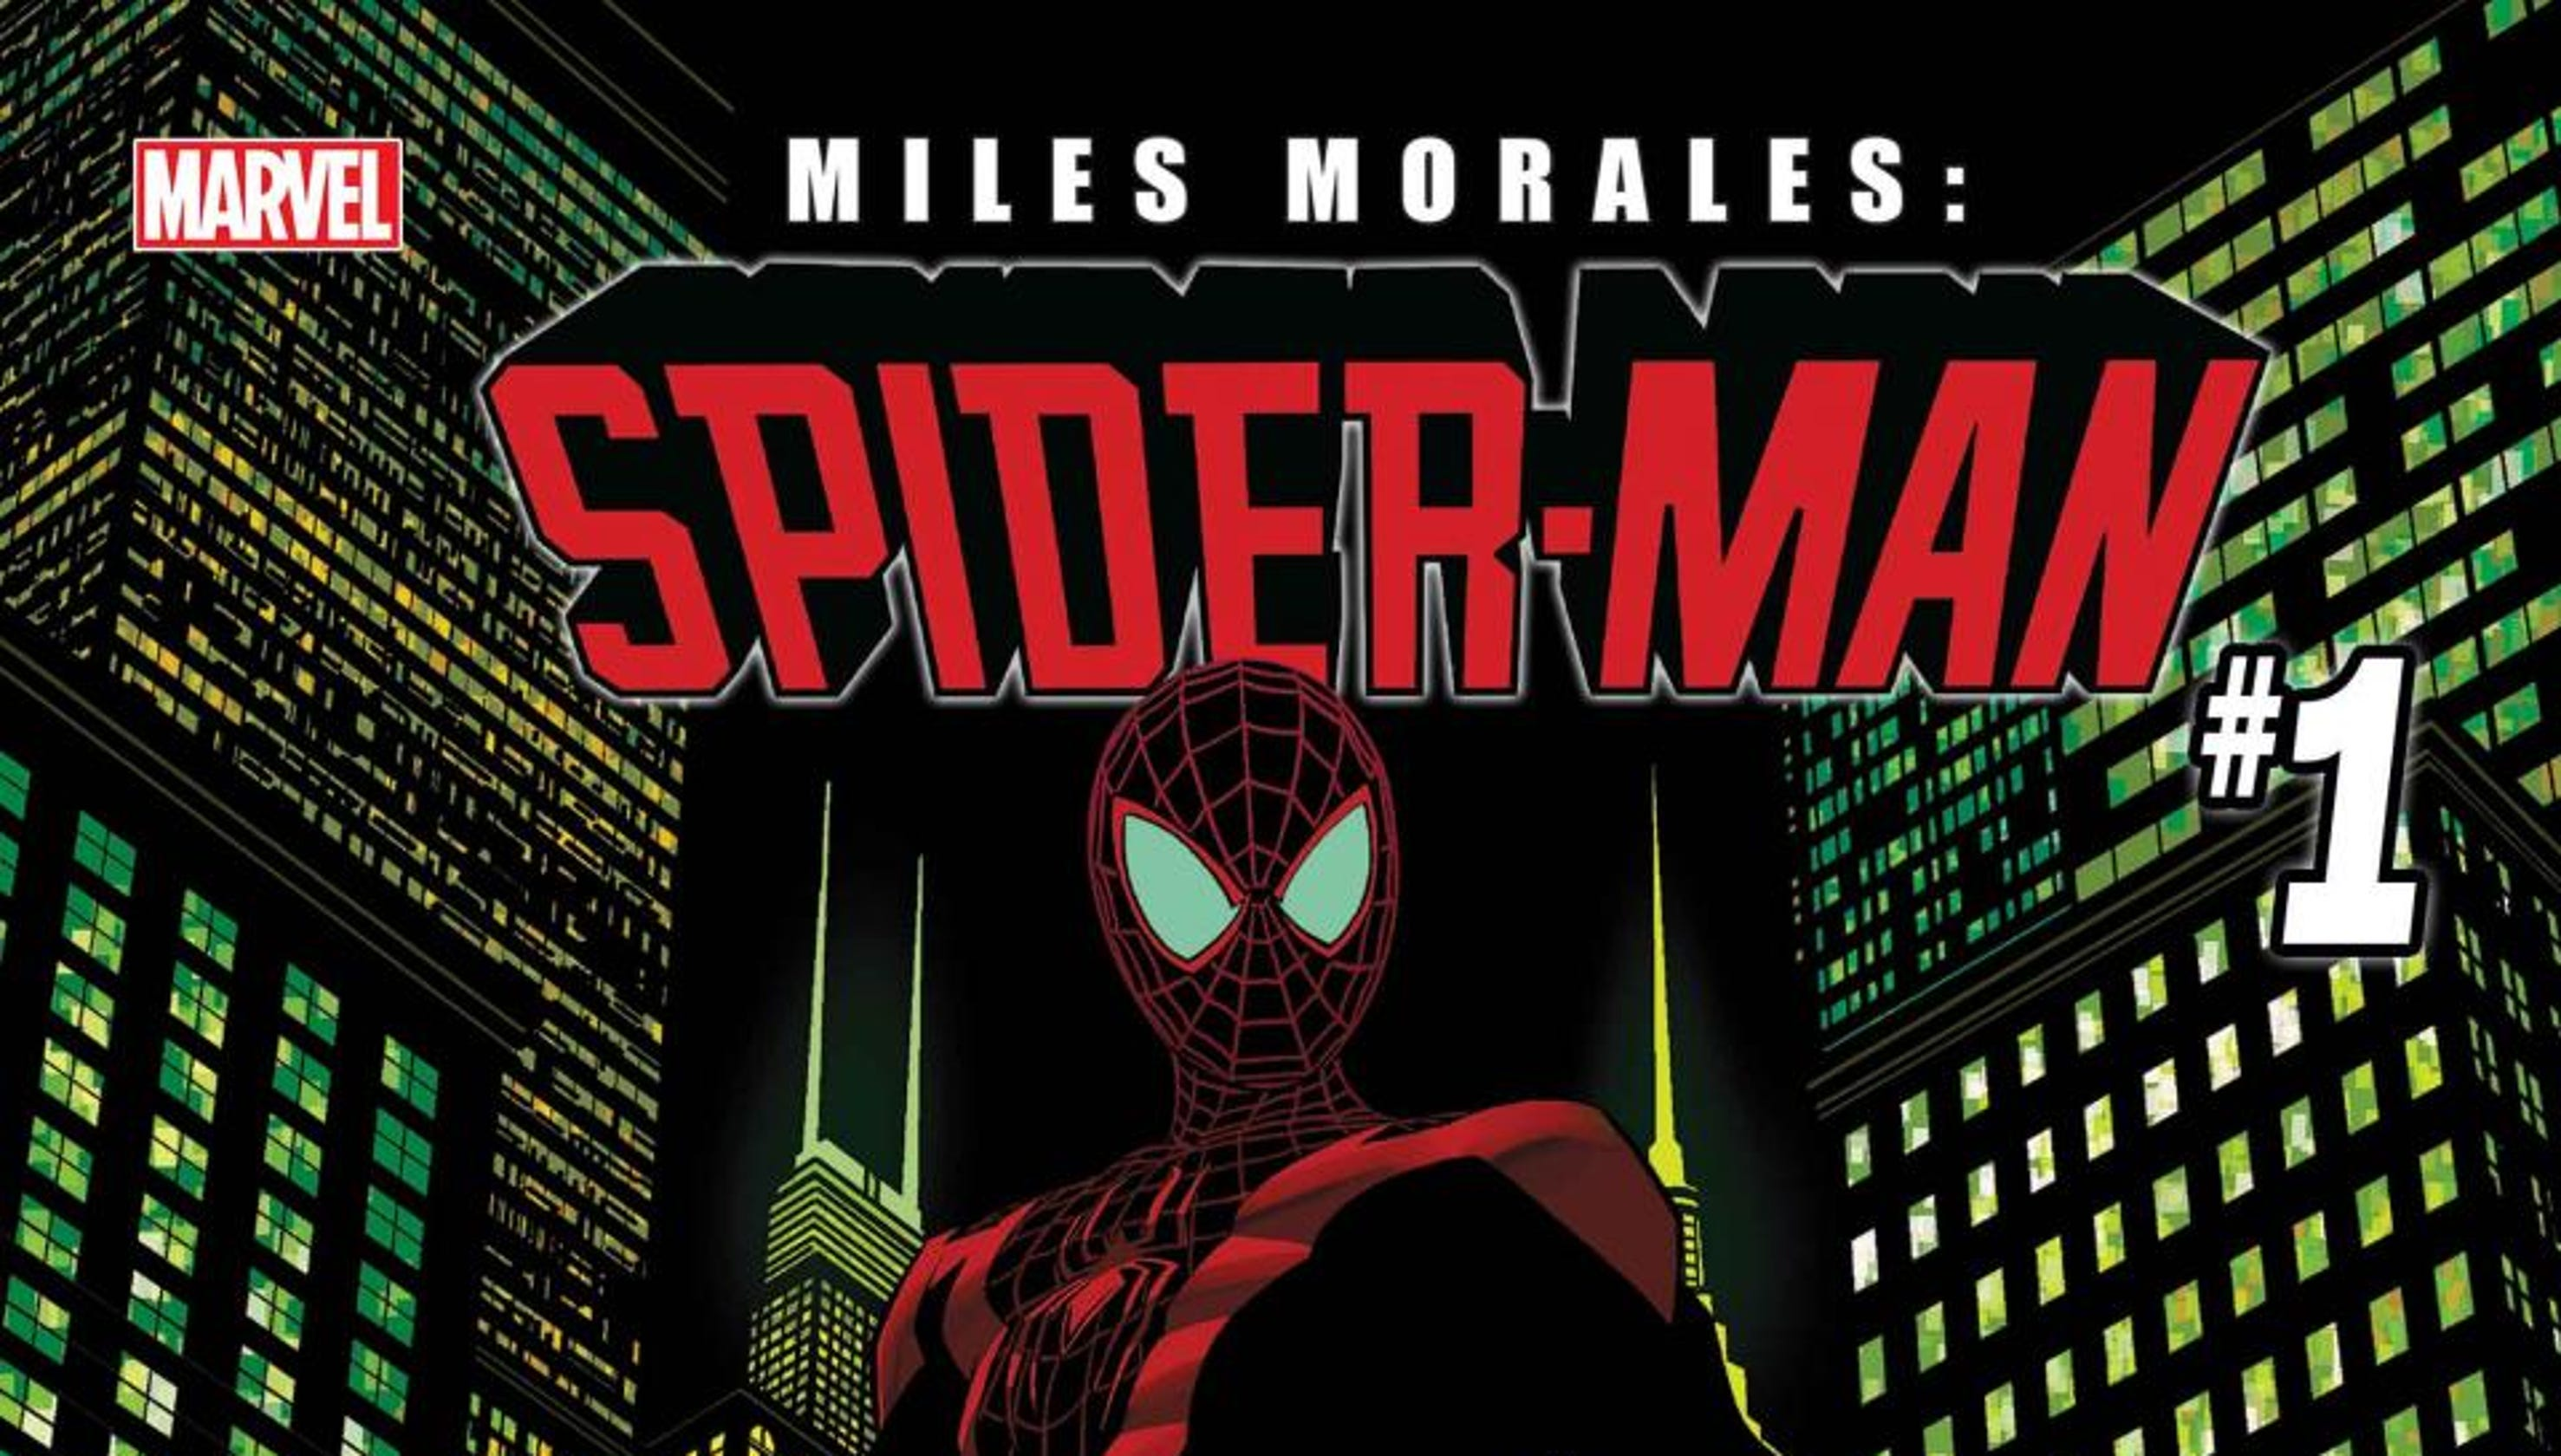 2bfa1ed0a8b768  Miles Morales  Spider-Man  1  comic  Author talks superhero